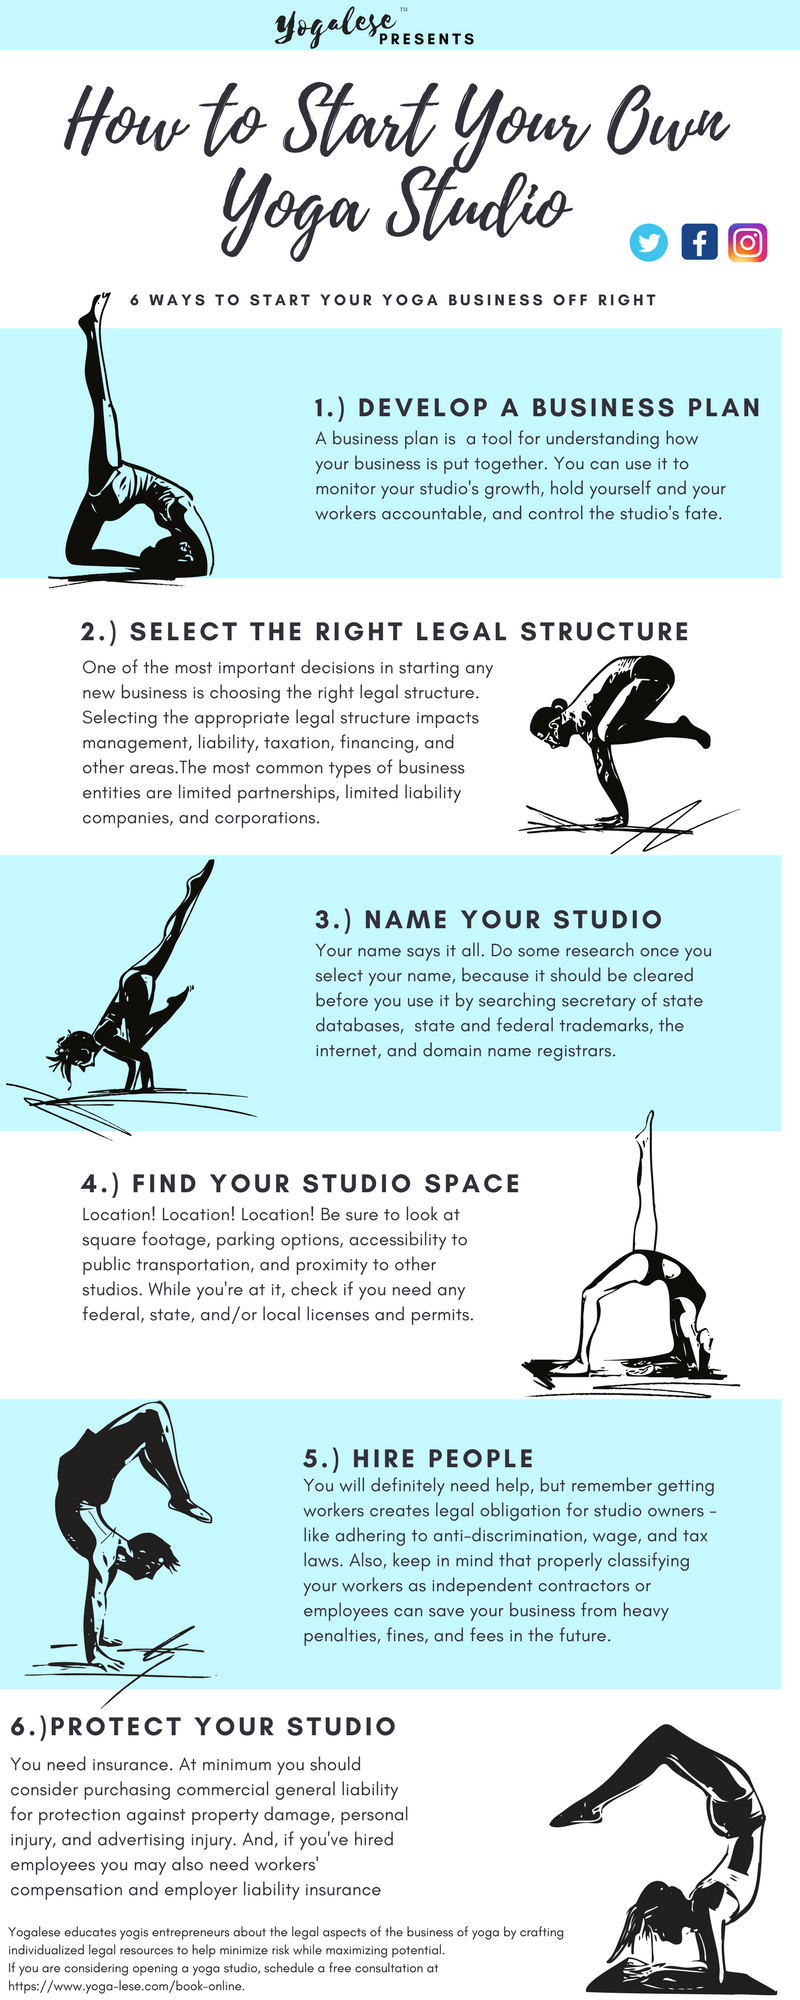 How to Start Your Own Yoga Studio: 6 Ways to Start Your Yoga Business off Right - Click the Link for Readable Text